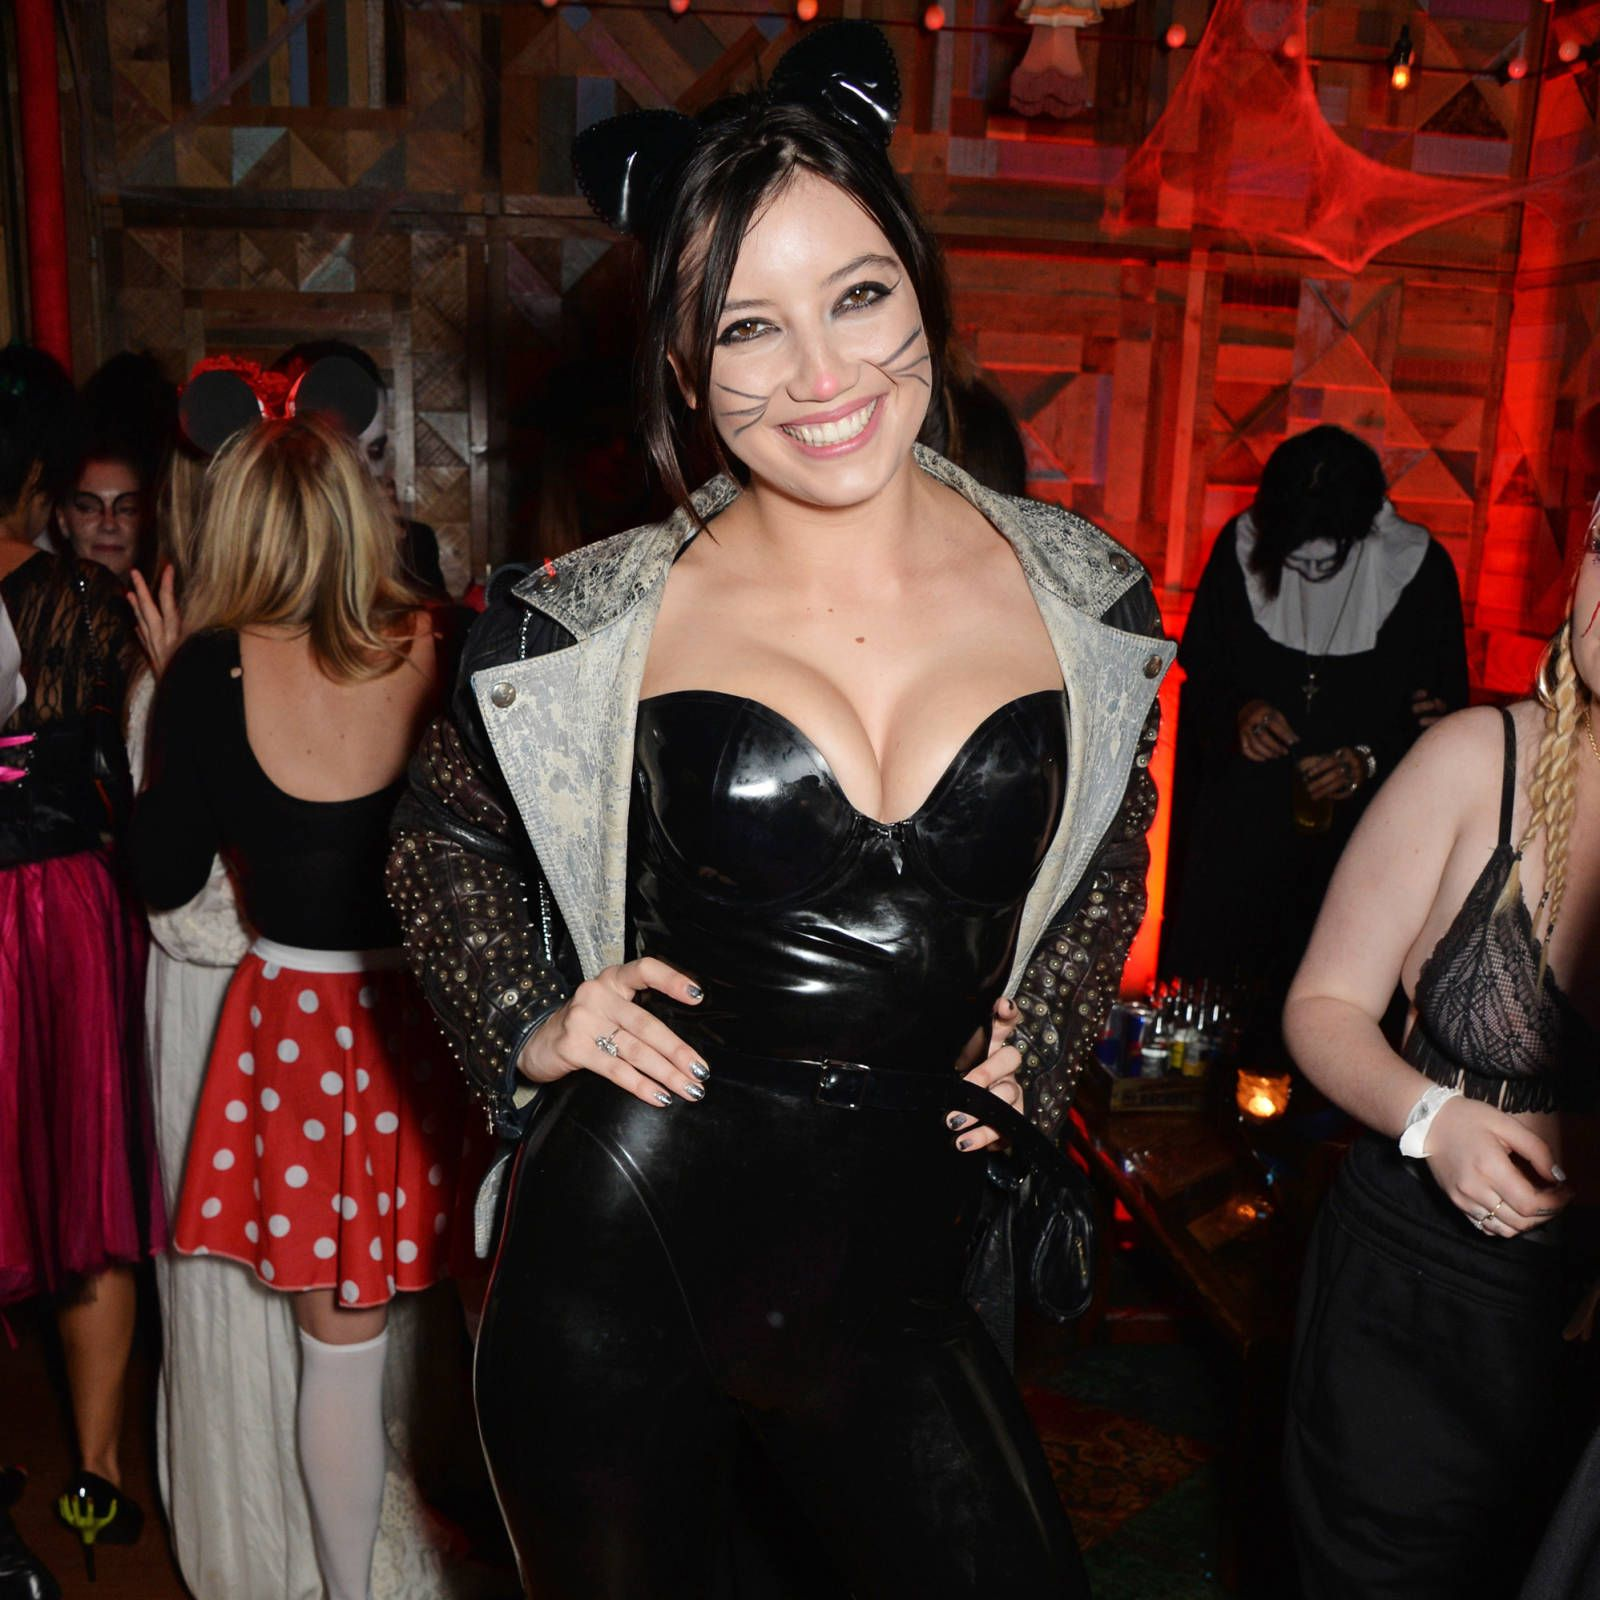 Kate Moss, Rita Ora, Nick Grimshaw and more dress up for Halloween at London's Death of a Geisha party